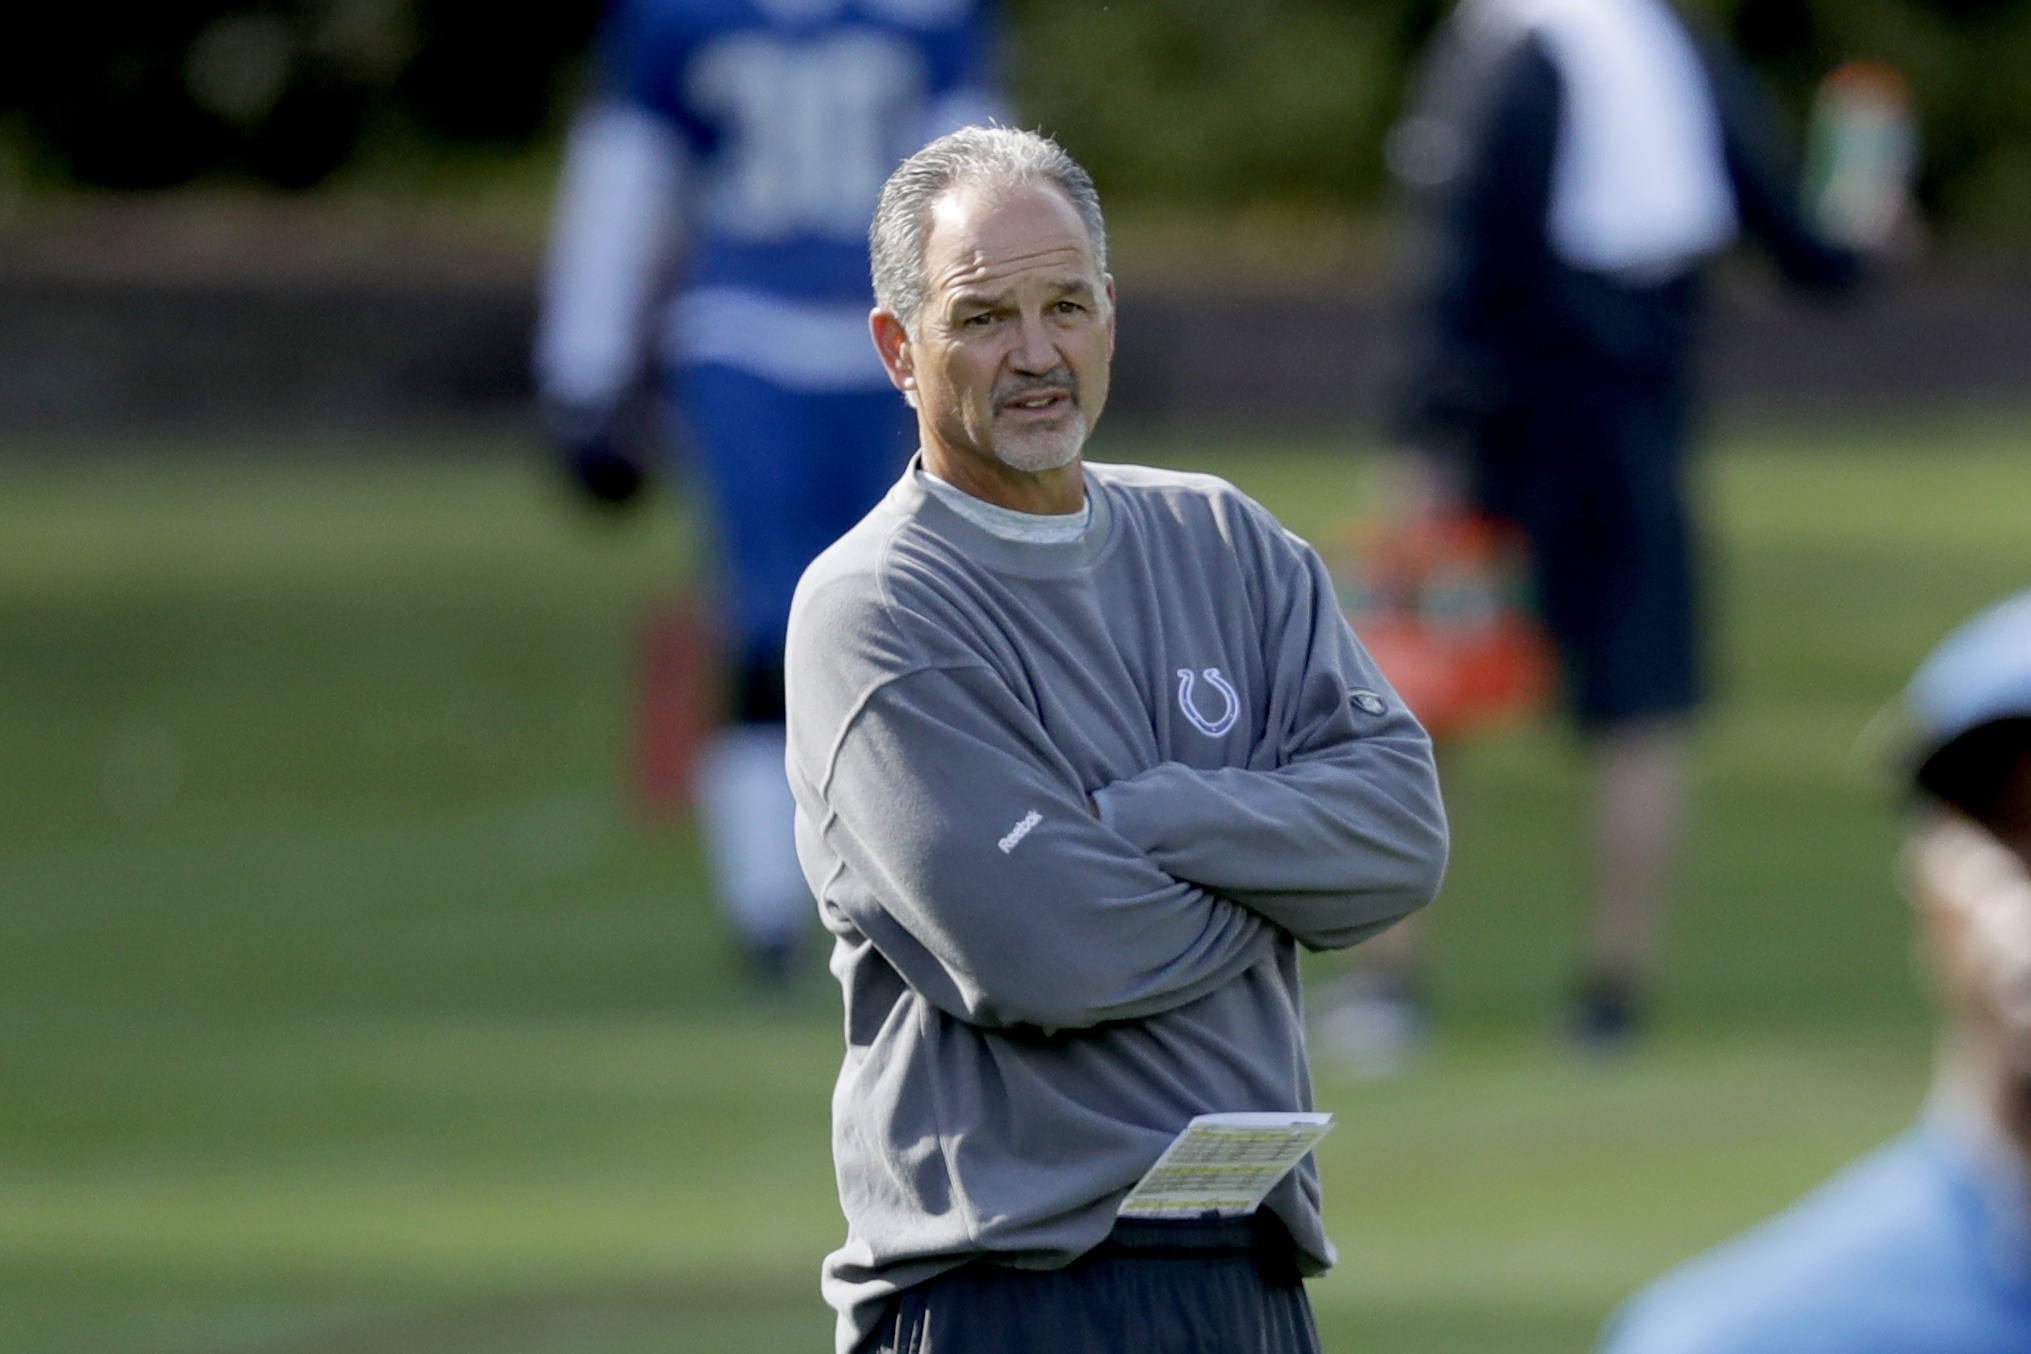 Indianapolis Colts head coach Chuck Pagano supervises an NFL training session at the Grove Hotel in Chandler's Cross, England, Friday, Sept. 30, 2016. The Indianapolis Colts are due to play the Jacksonville Jaguars at Wembley stadium in London on Sunday i